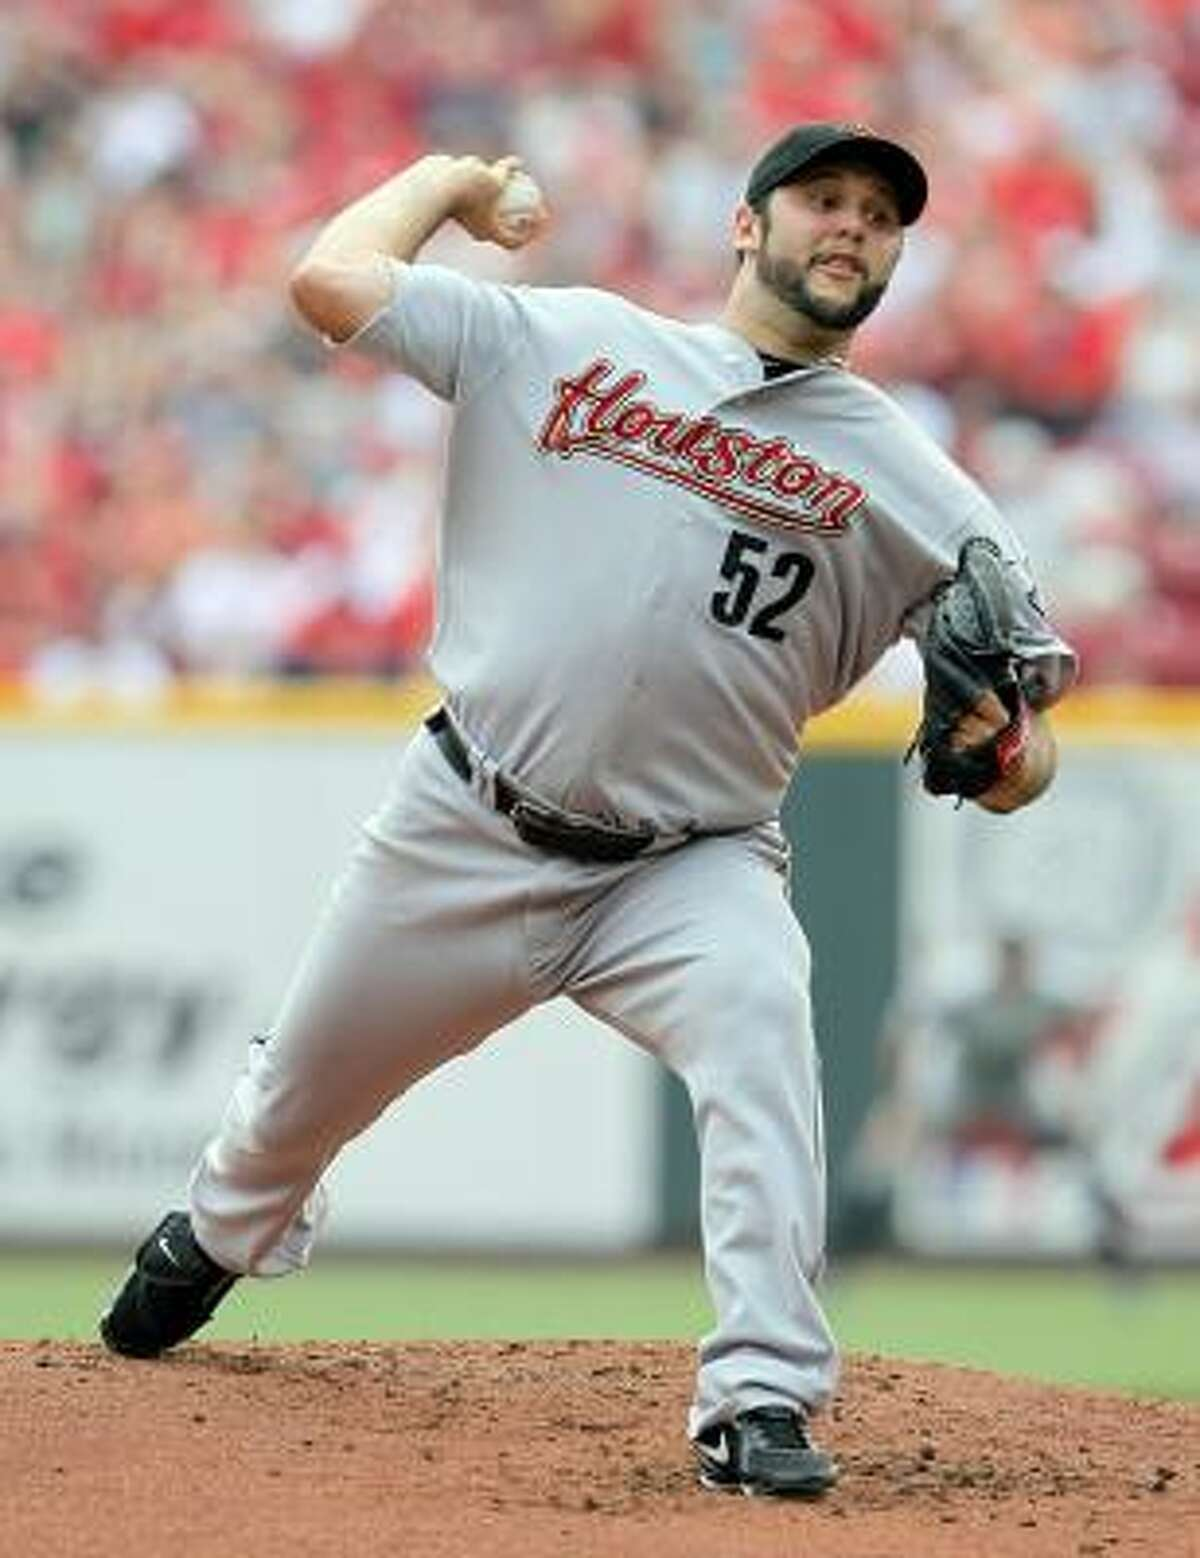 Felipe Paulino pitched eight shutout innings Sunday against the Reds.